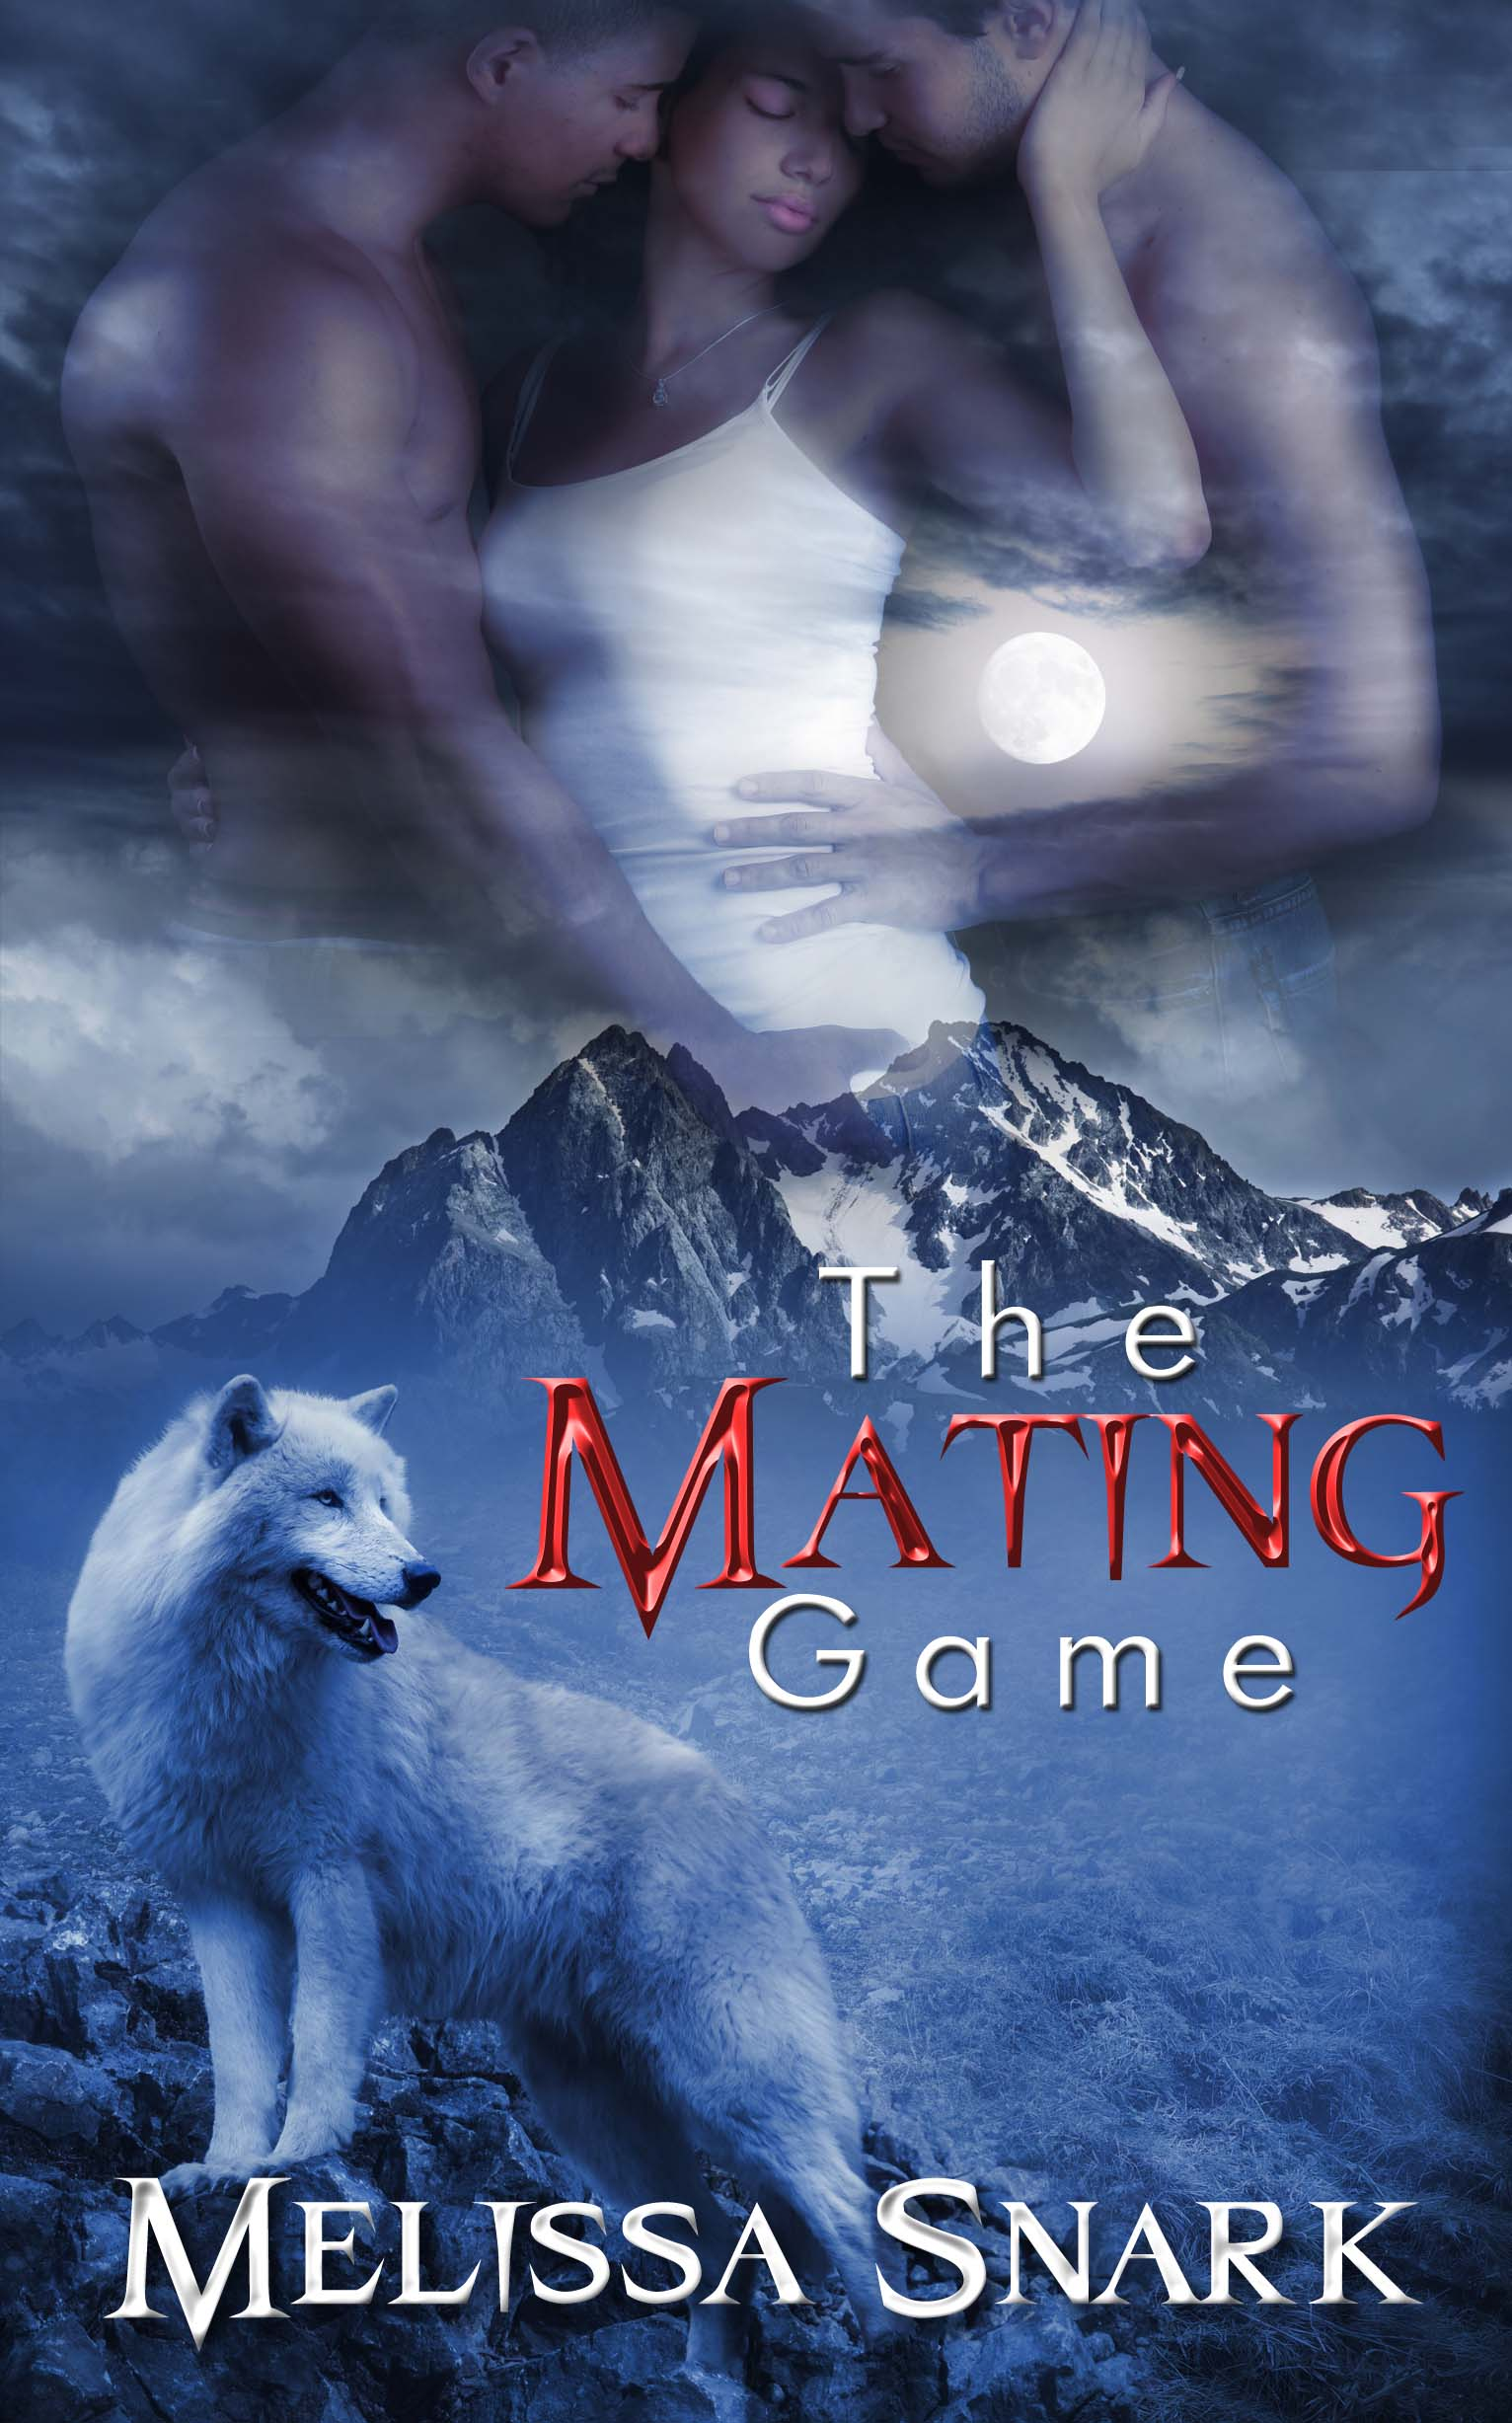 The Mating Game Paranormal Romance Melissa Snark